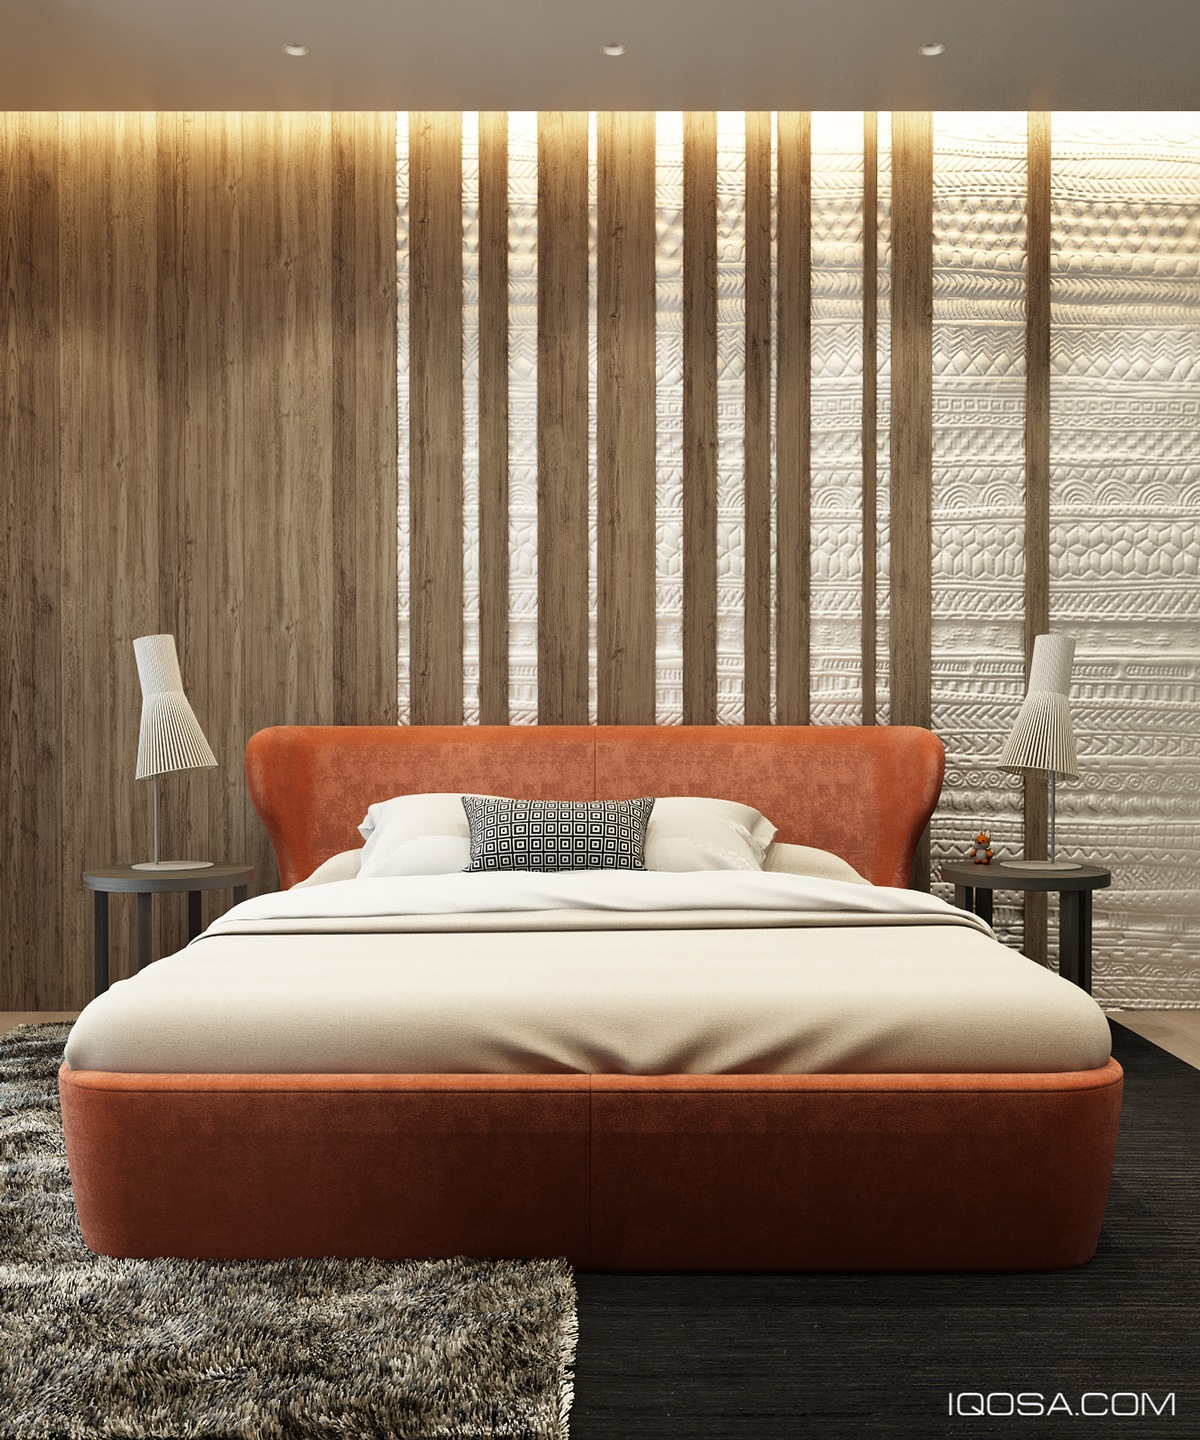 New Home Designs Latest Modern Homes Bedrooms Designs: 3 Homes That Make Bold Use Of Wood